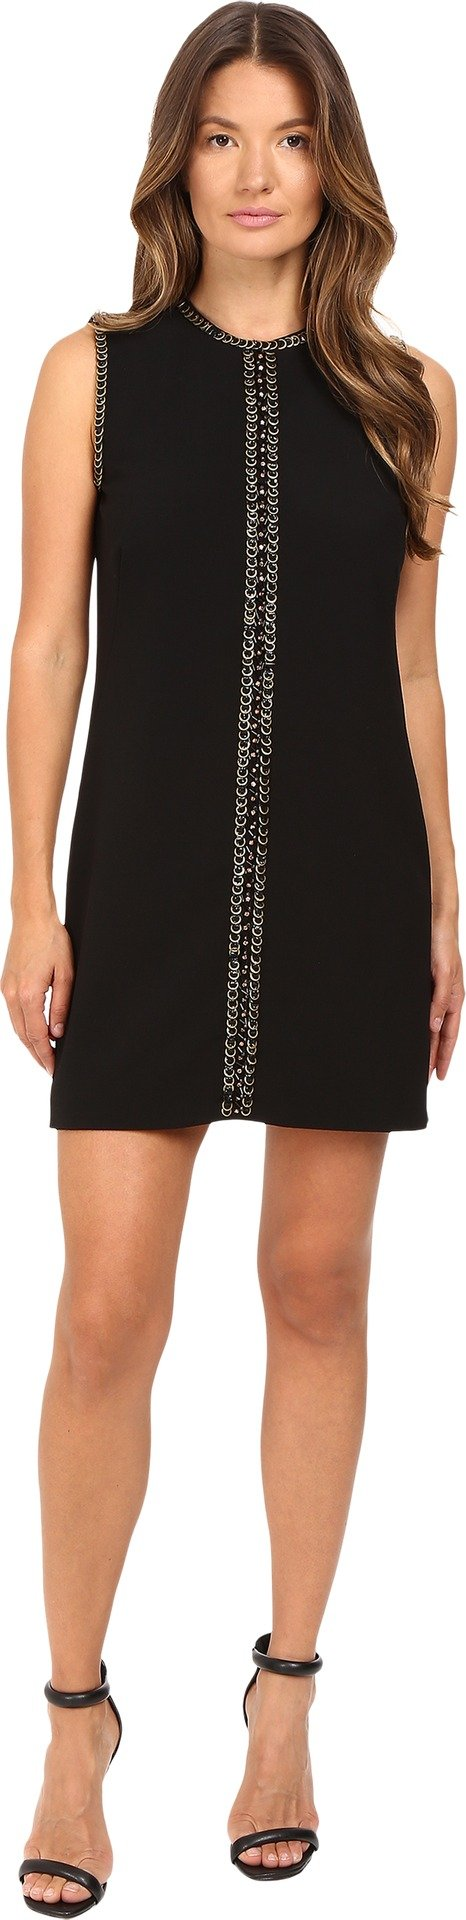 DSQUARED2 Women's Stretch Wool Chaine Embroidery Sleeveless Mini Dress, Black, 40 (US 2)